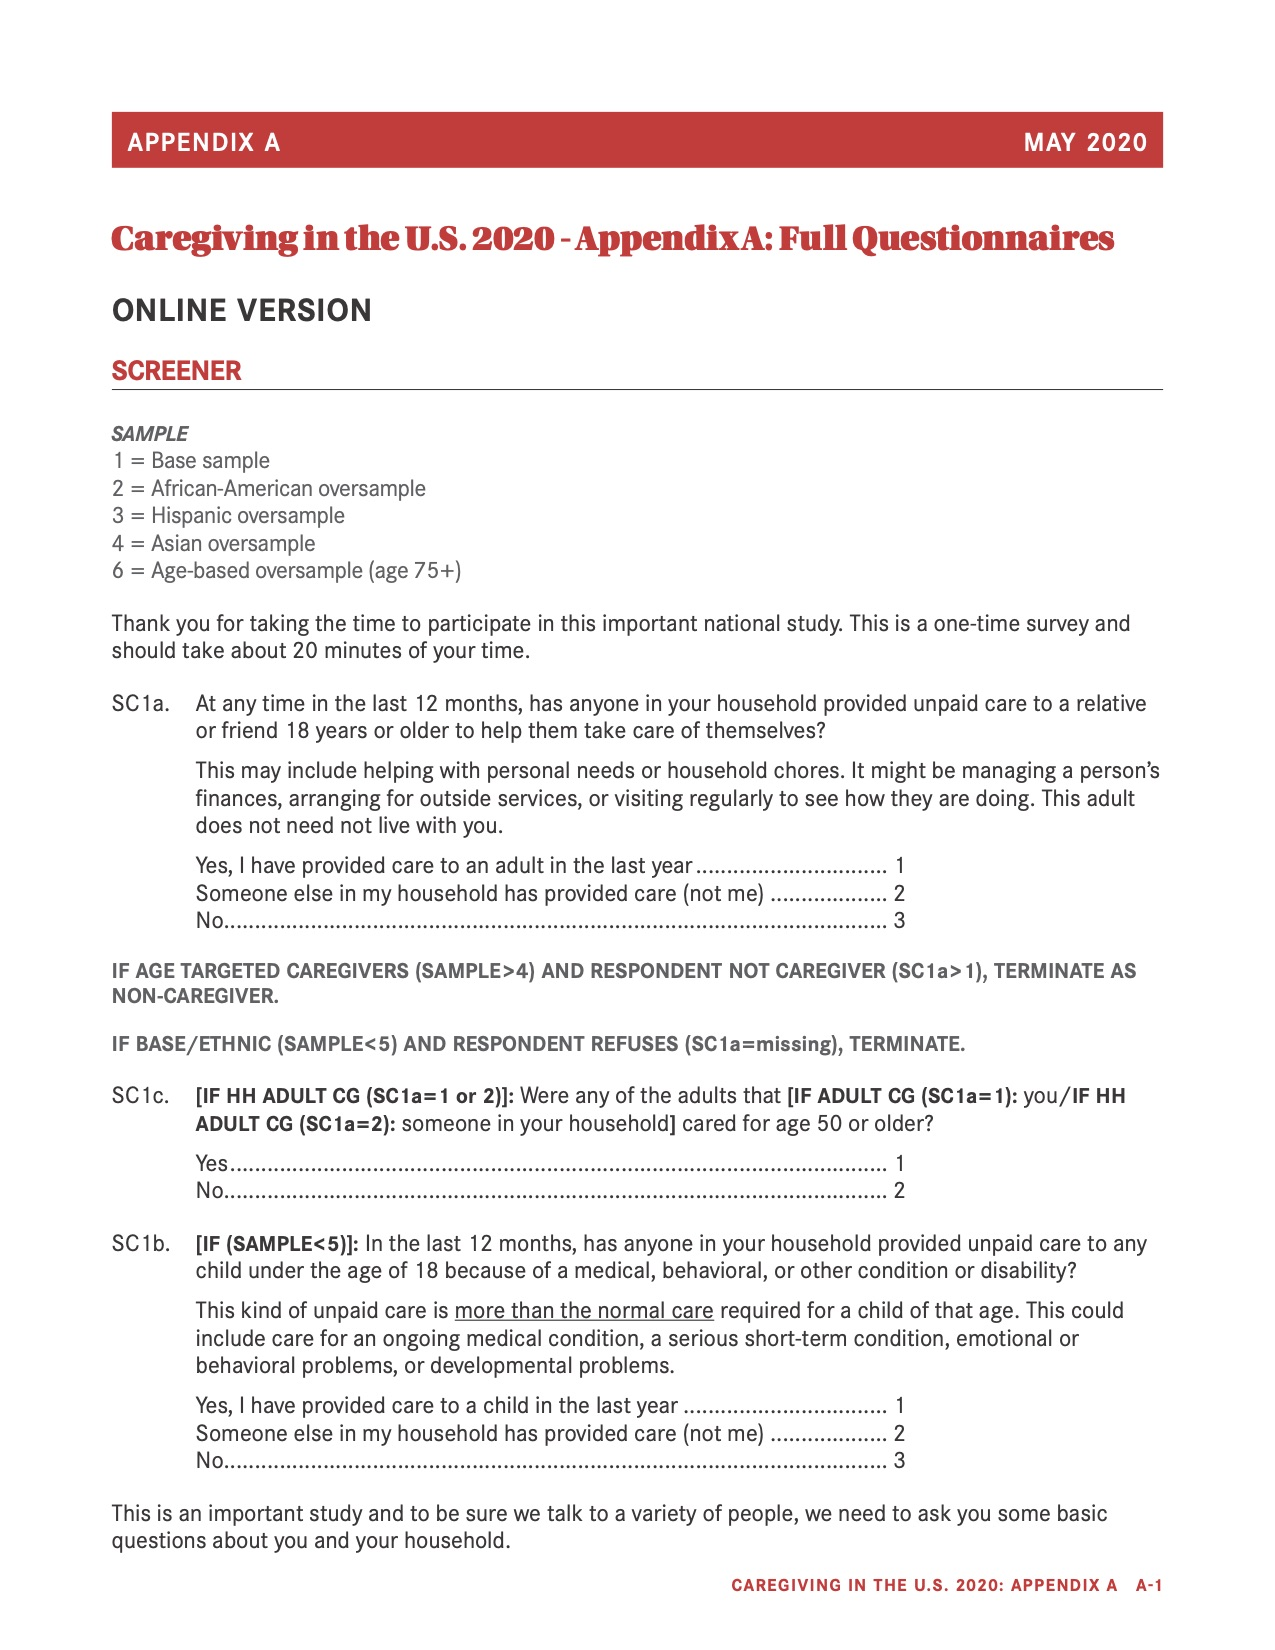 Appendix A Caregiving in the United States 2020 Cover Photo